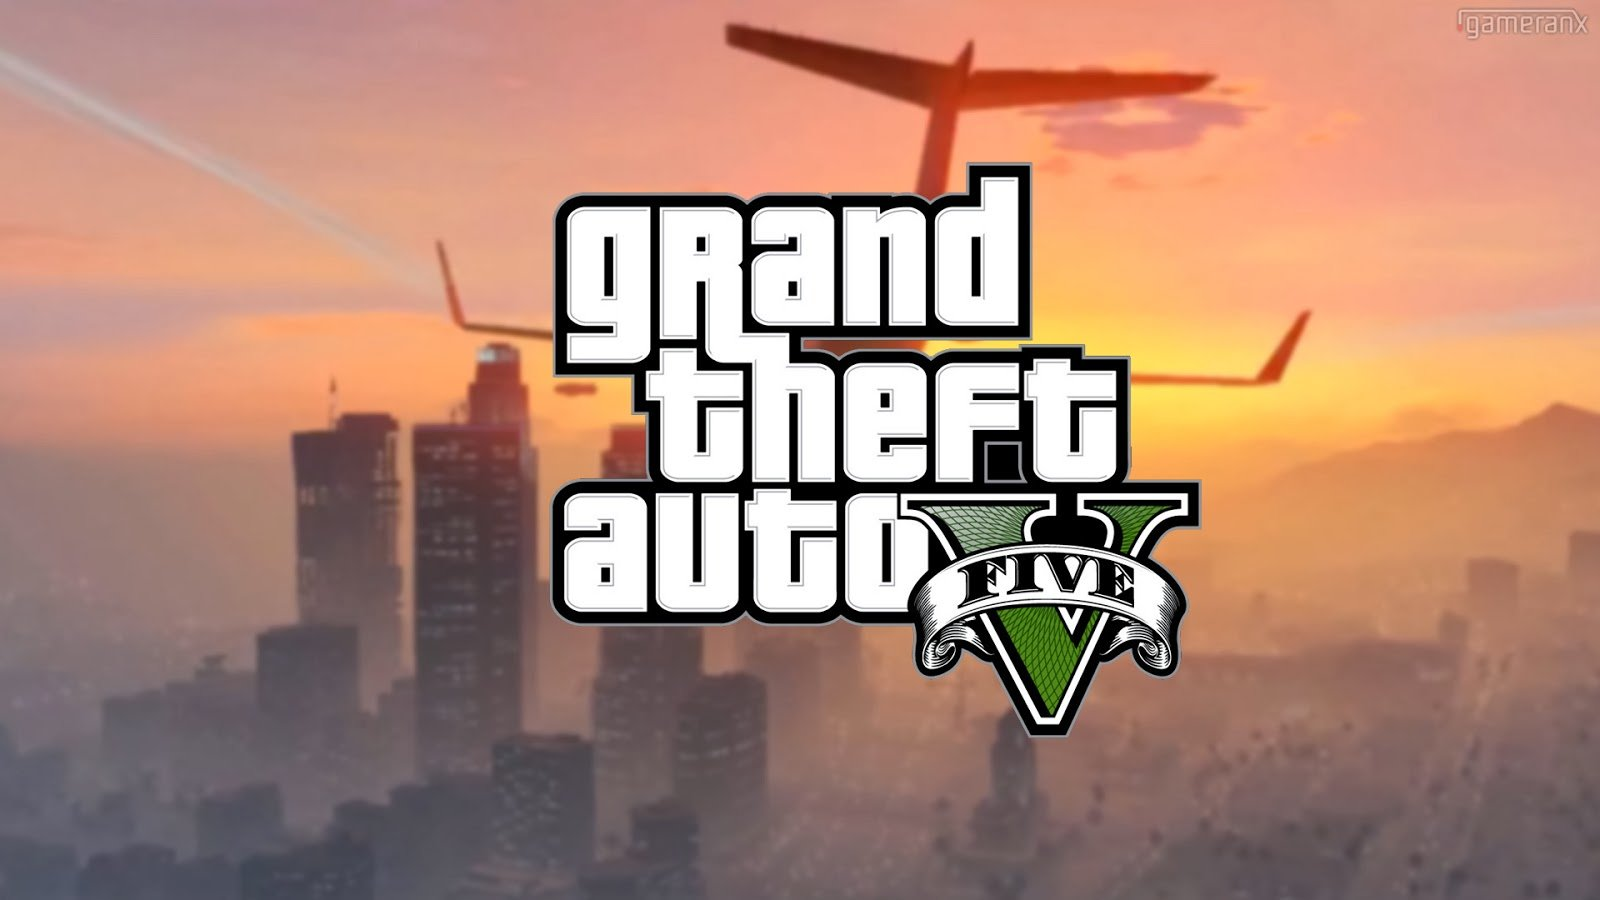 Grand Theft Auto V HD 1080p Wallpapers Grand Theft Auto 5 Guide Blog 1600x900